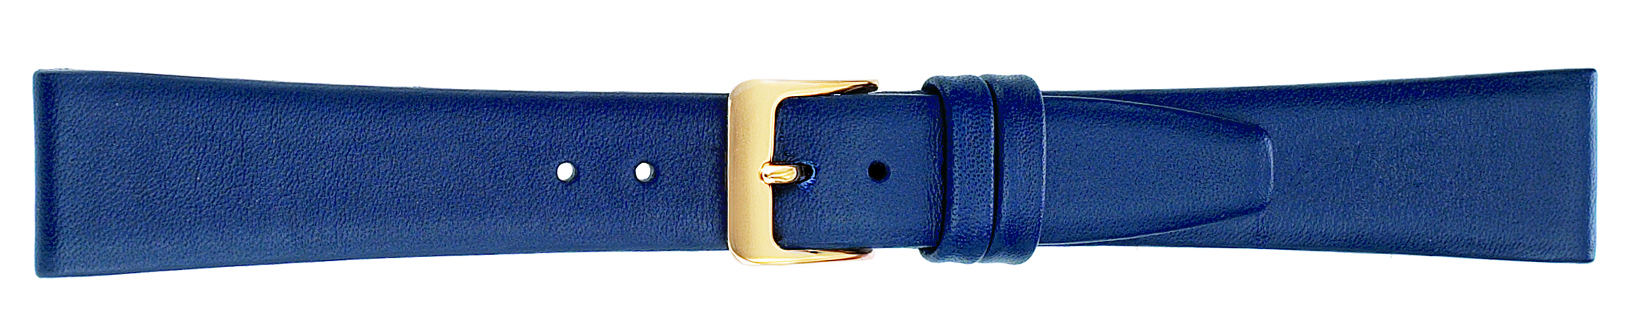 12MM Leather Band Navy Smooth Calf-0